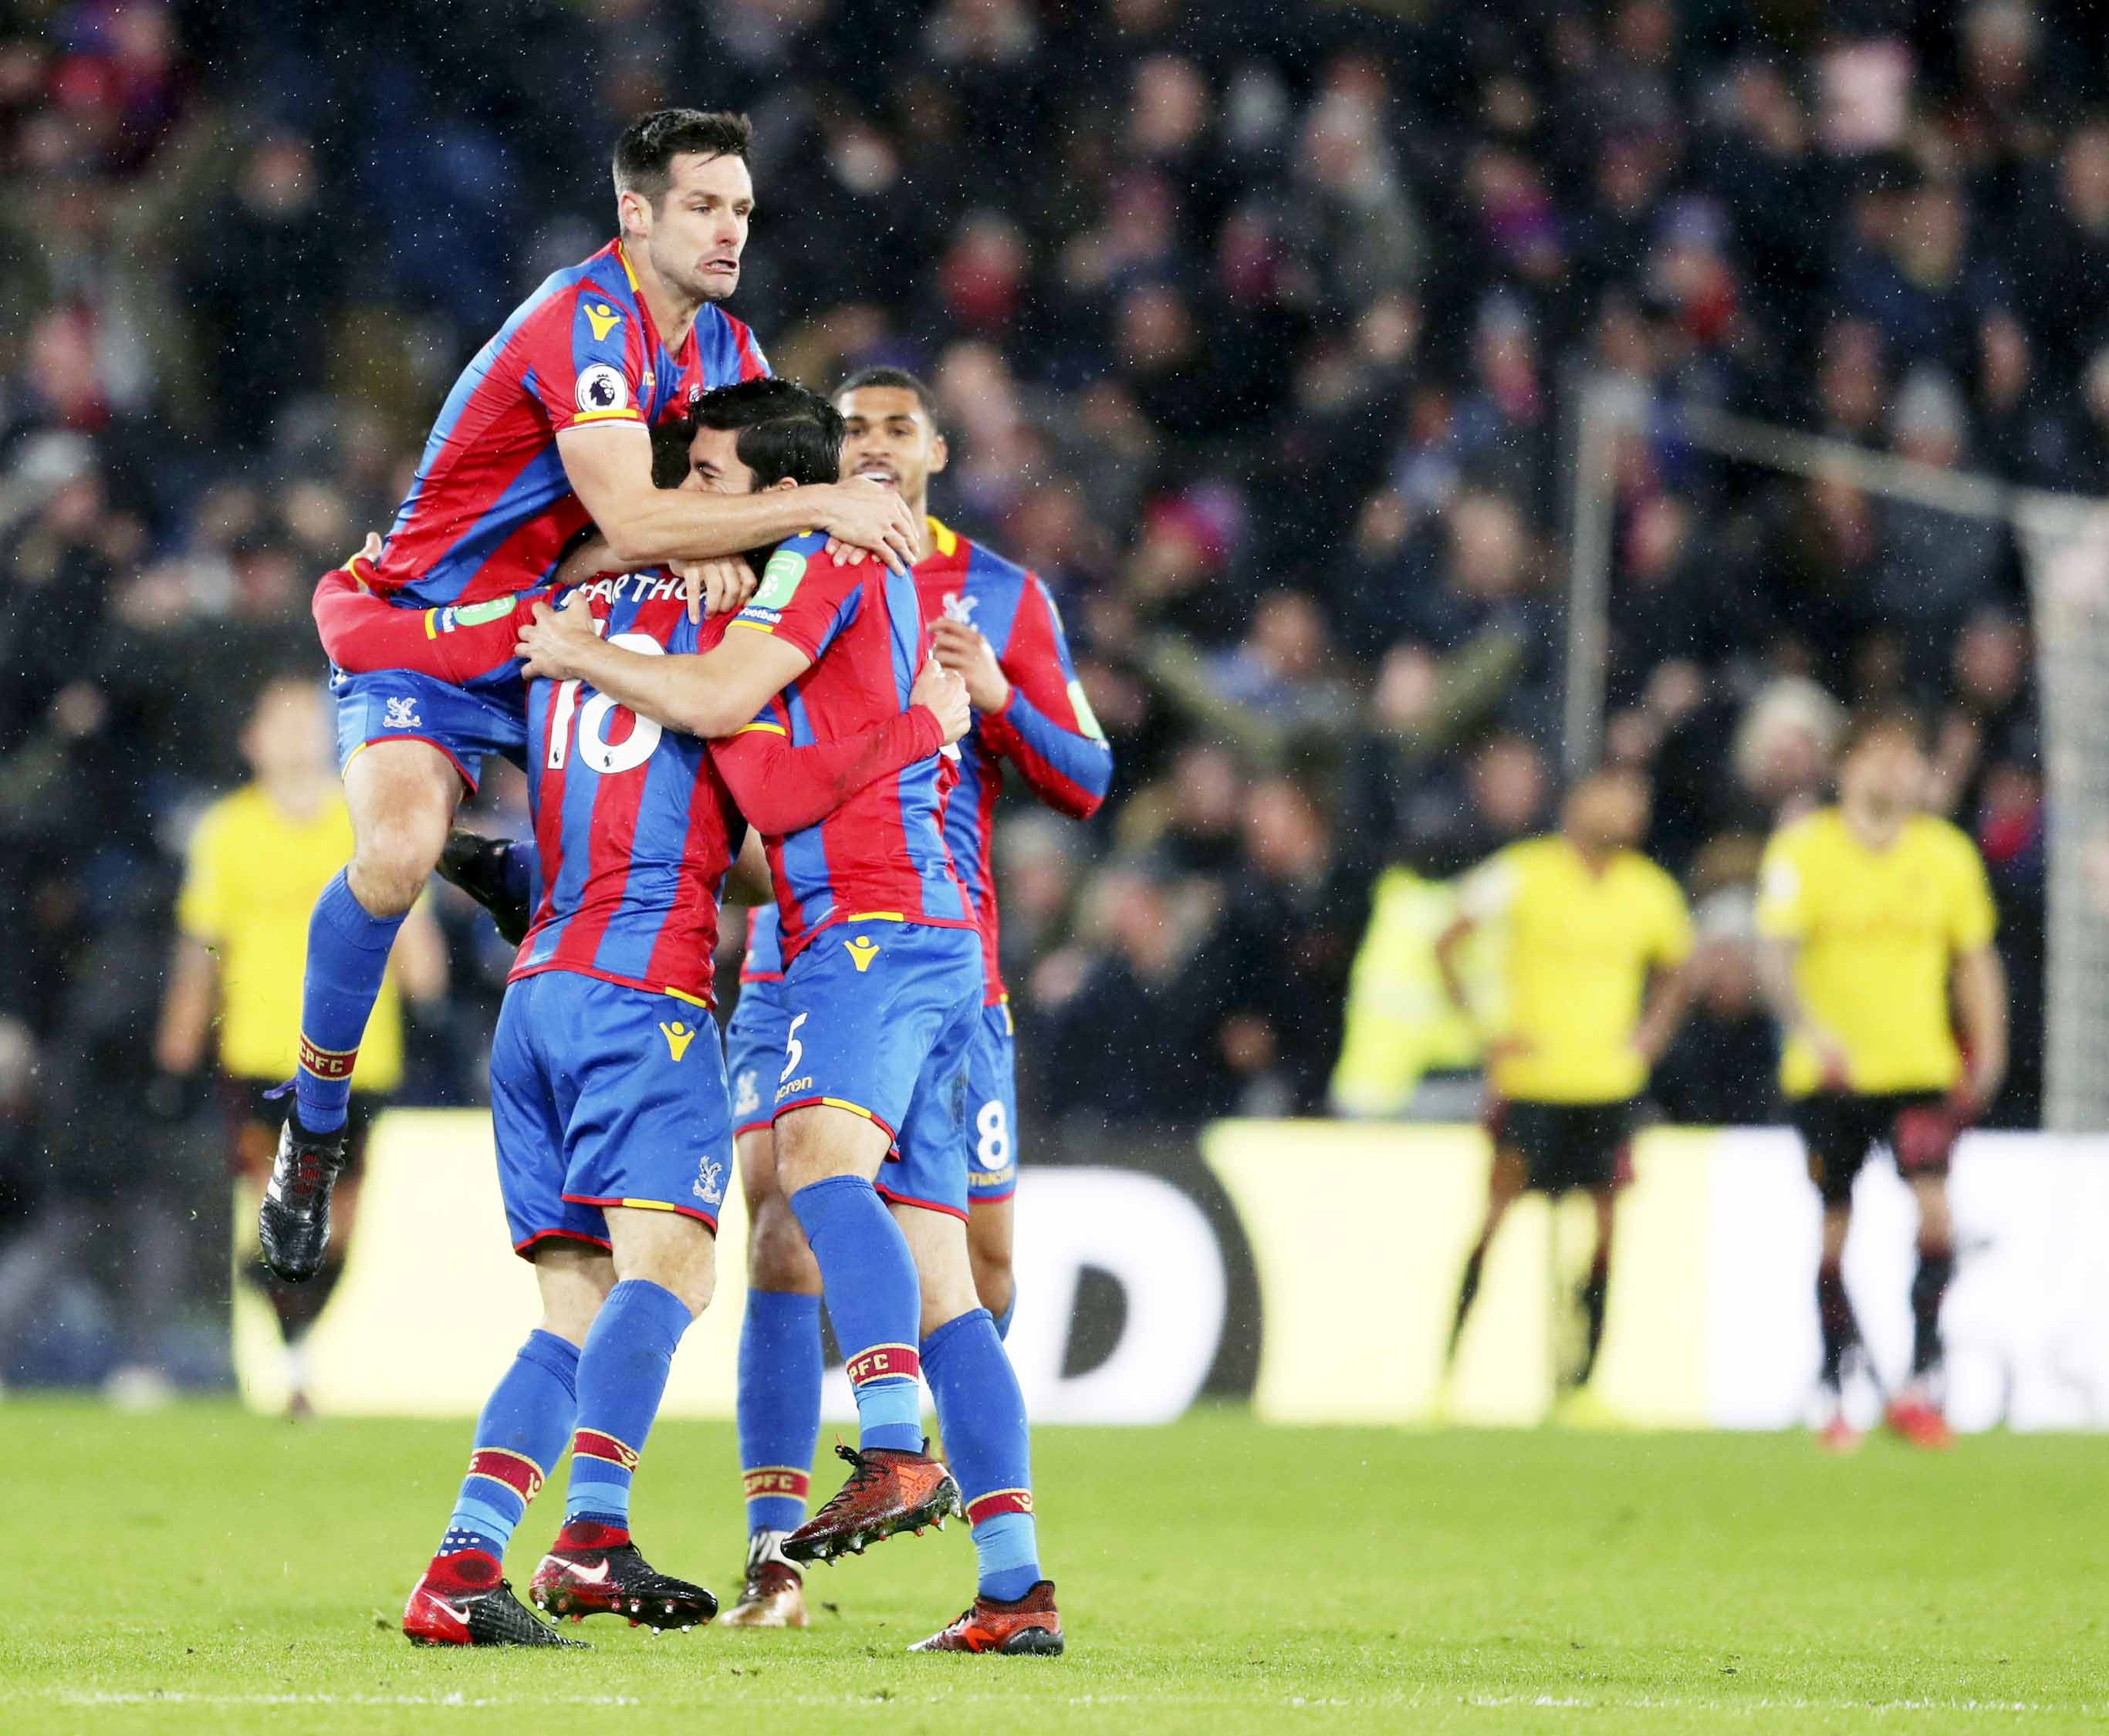 Crystal Palace's James McArthur (centre) celebrates scoring his side's second goal of the game with team-mates during the English Premier League match between Crystal Palace versus Watford at Selhurst Park, London on Tuesday.